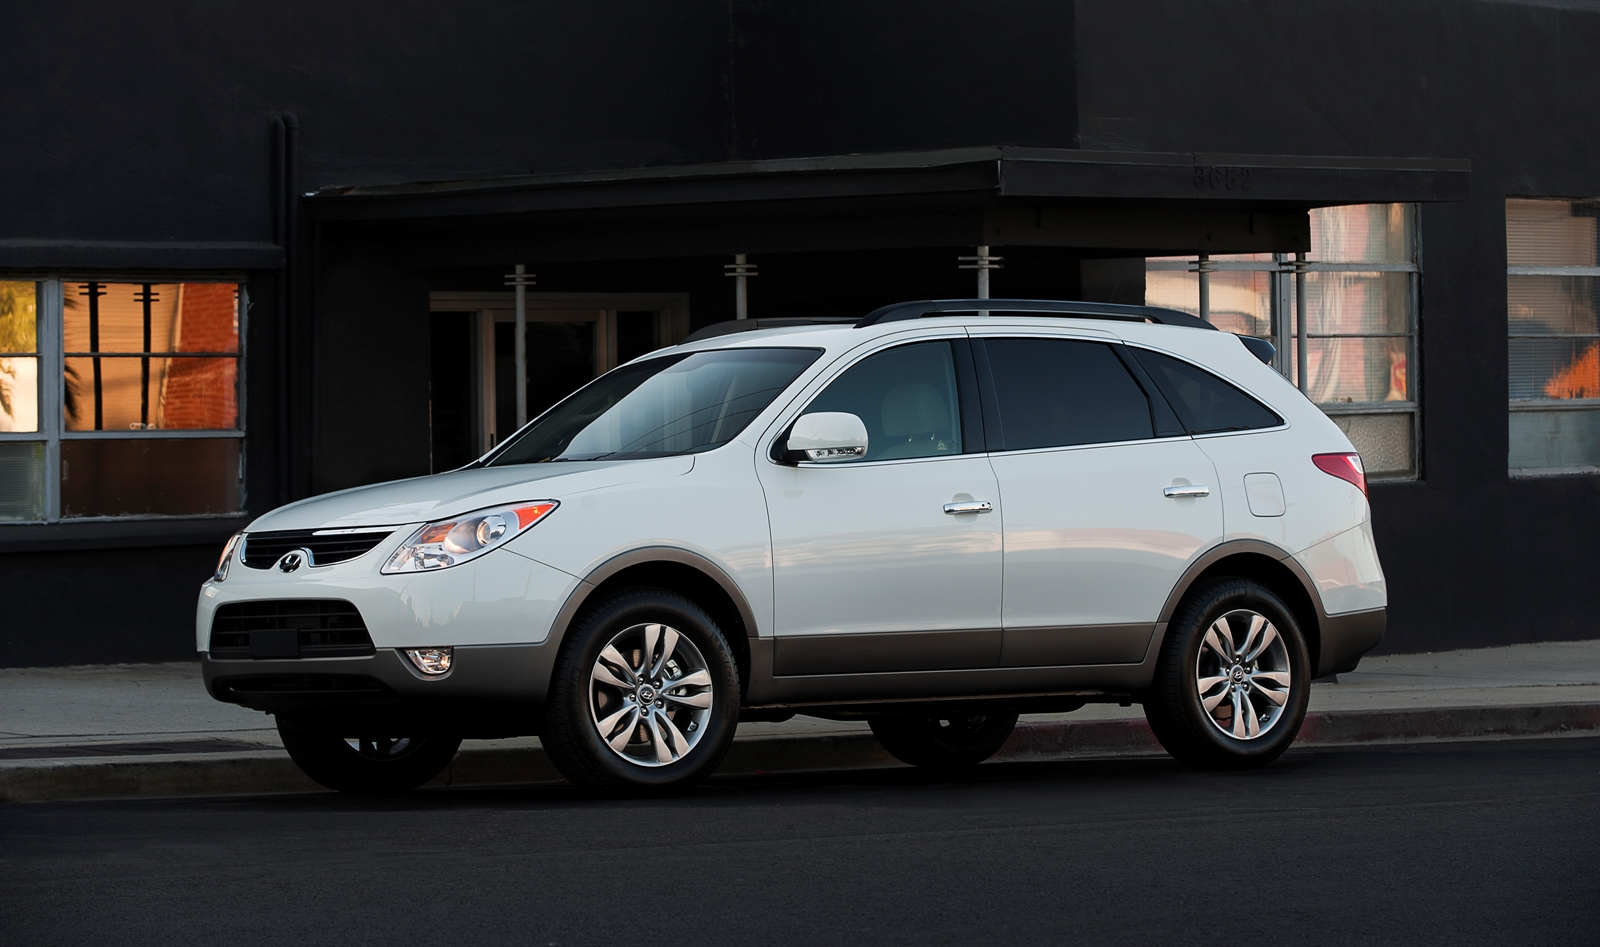 2012 Hyundai Veracruz Review, Ratings, Specs, Prices, and Photos - The Car Connection